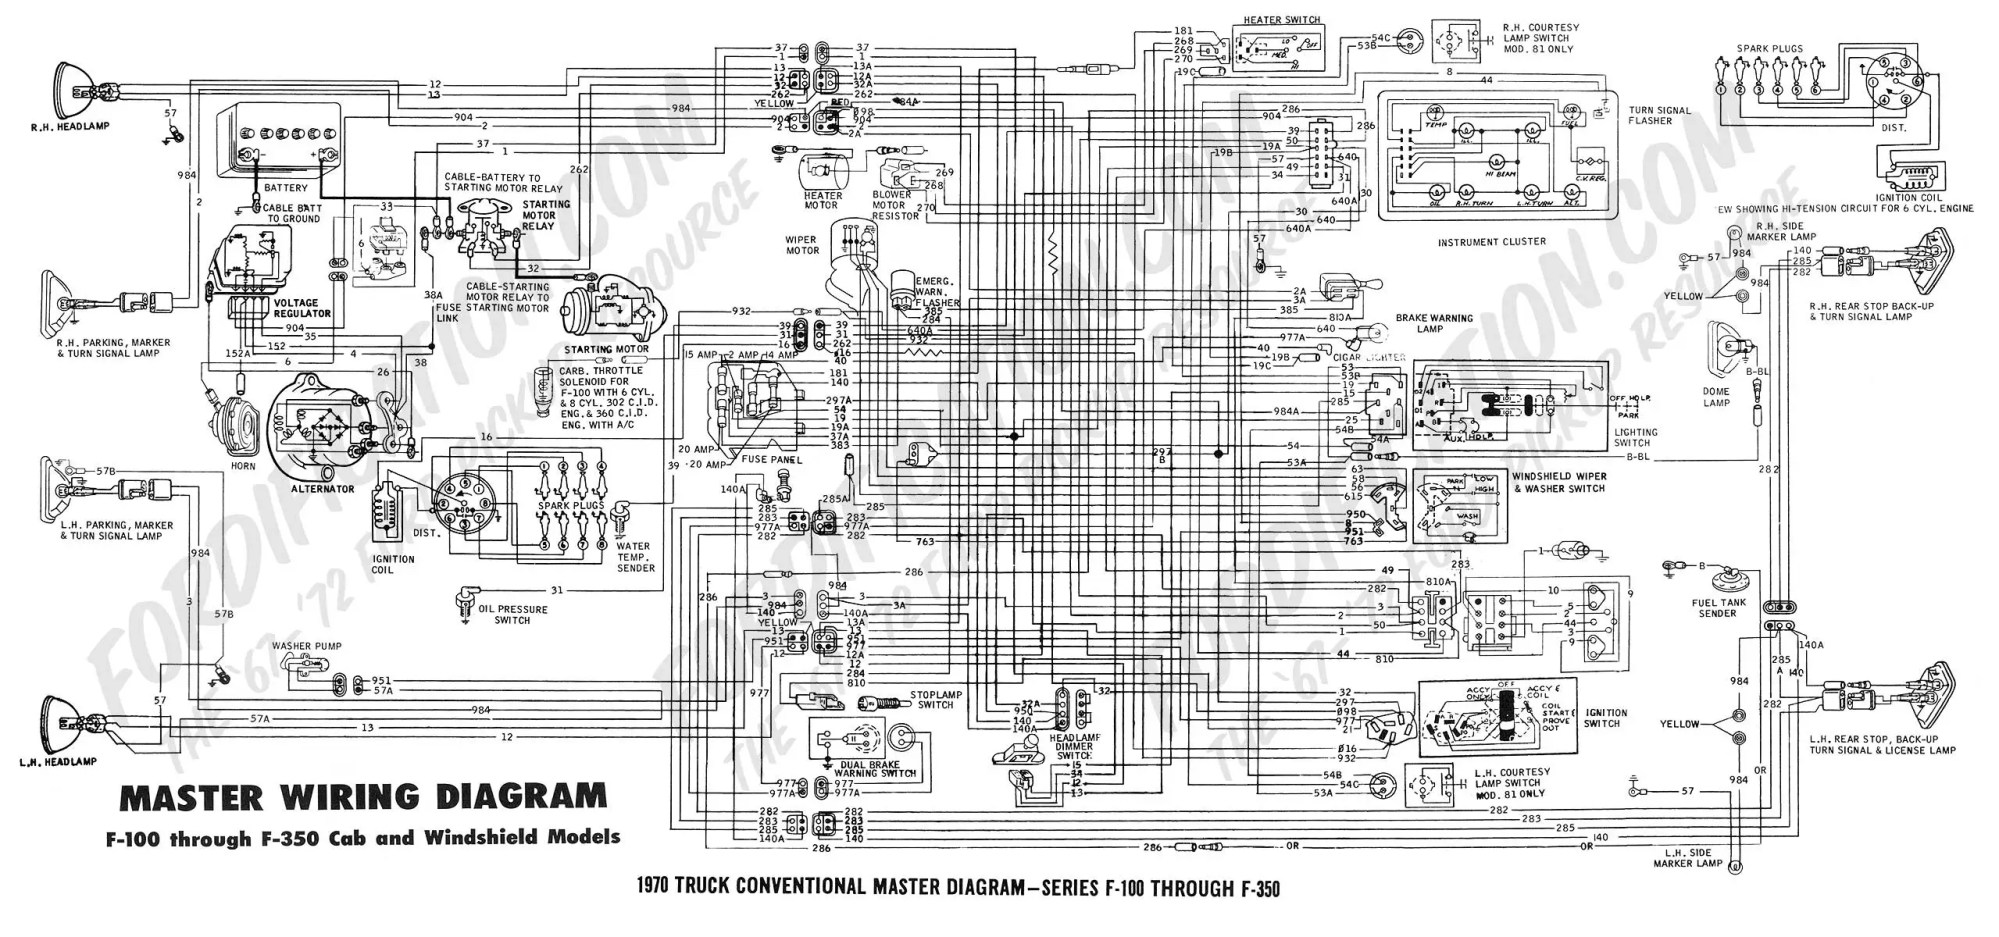 hight resolution of ford f 250 electrical diagram wiring diagrams favorites 1969 ford mustang wiring diagram 1969 f250 wiring diagram